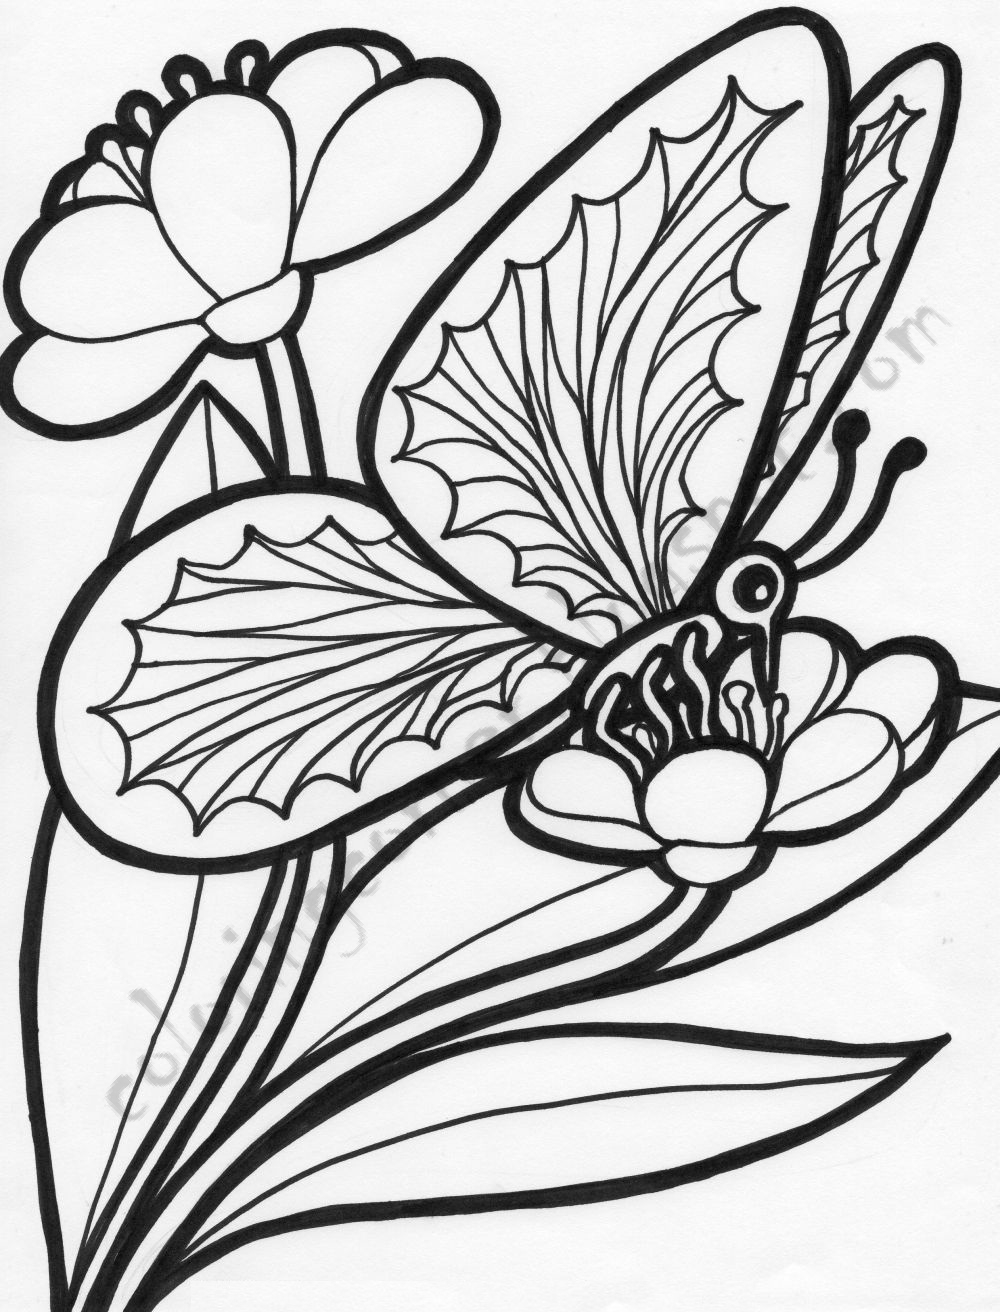 Butterfly Drawing Color at GetDrawings.com | Free for personal use ...